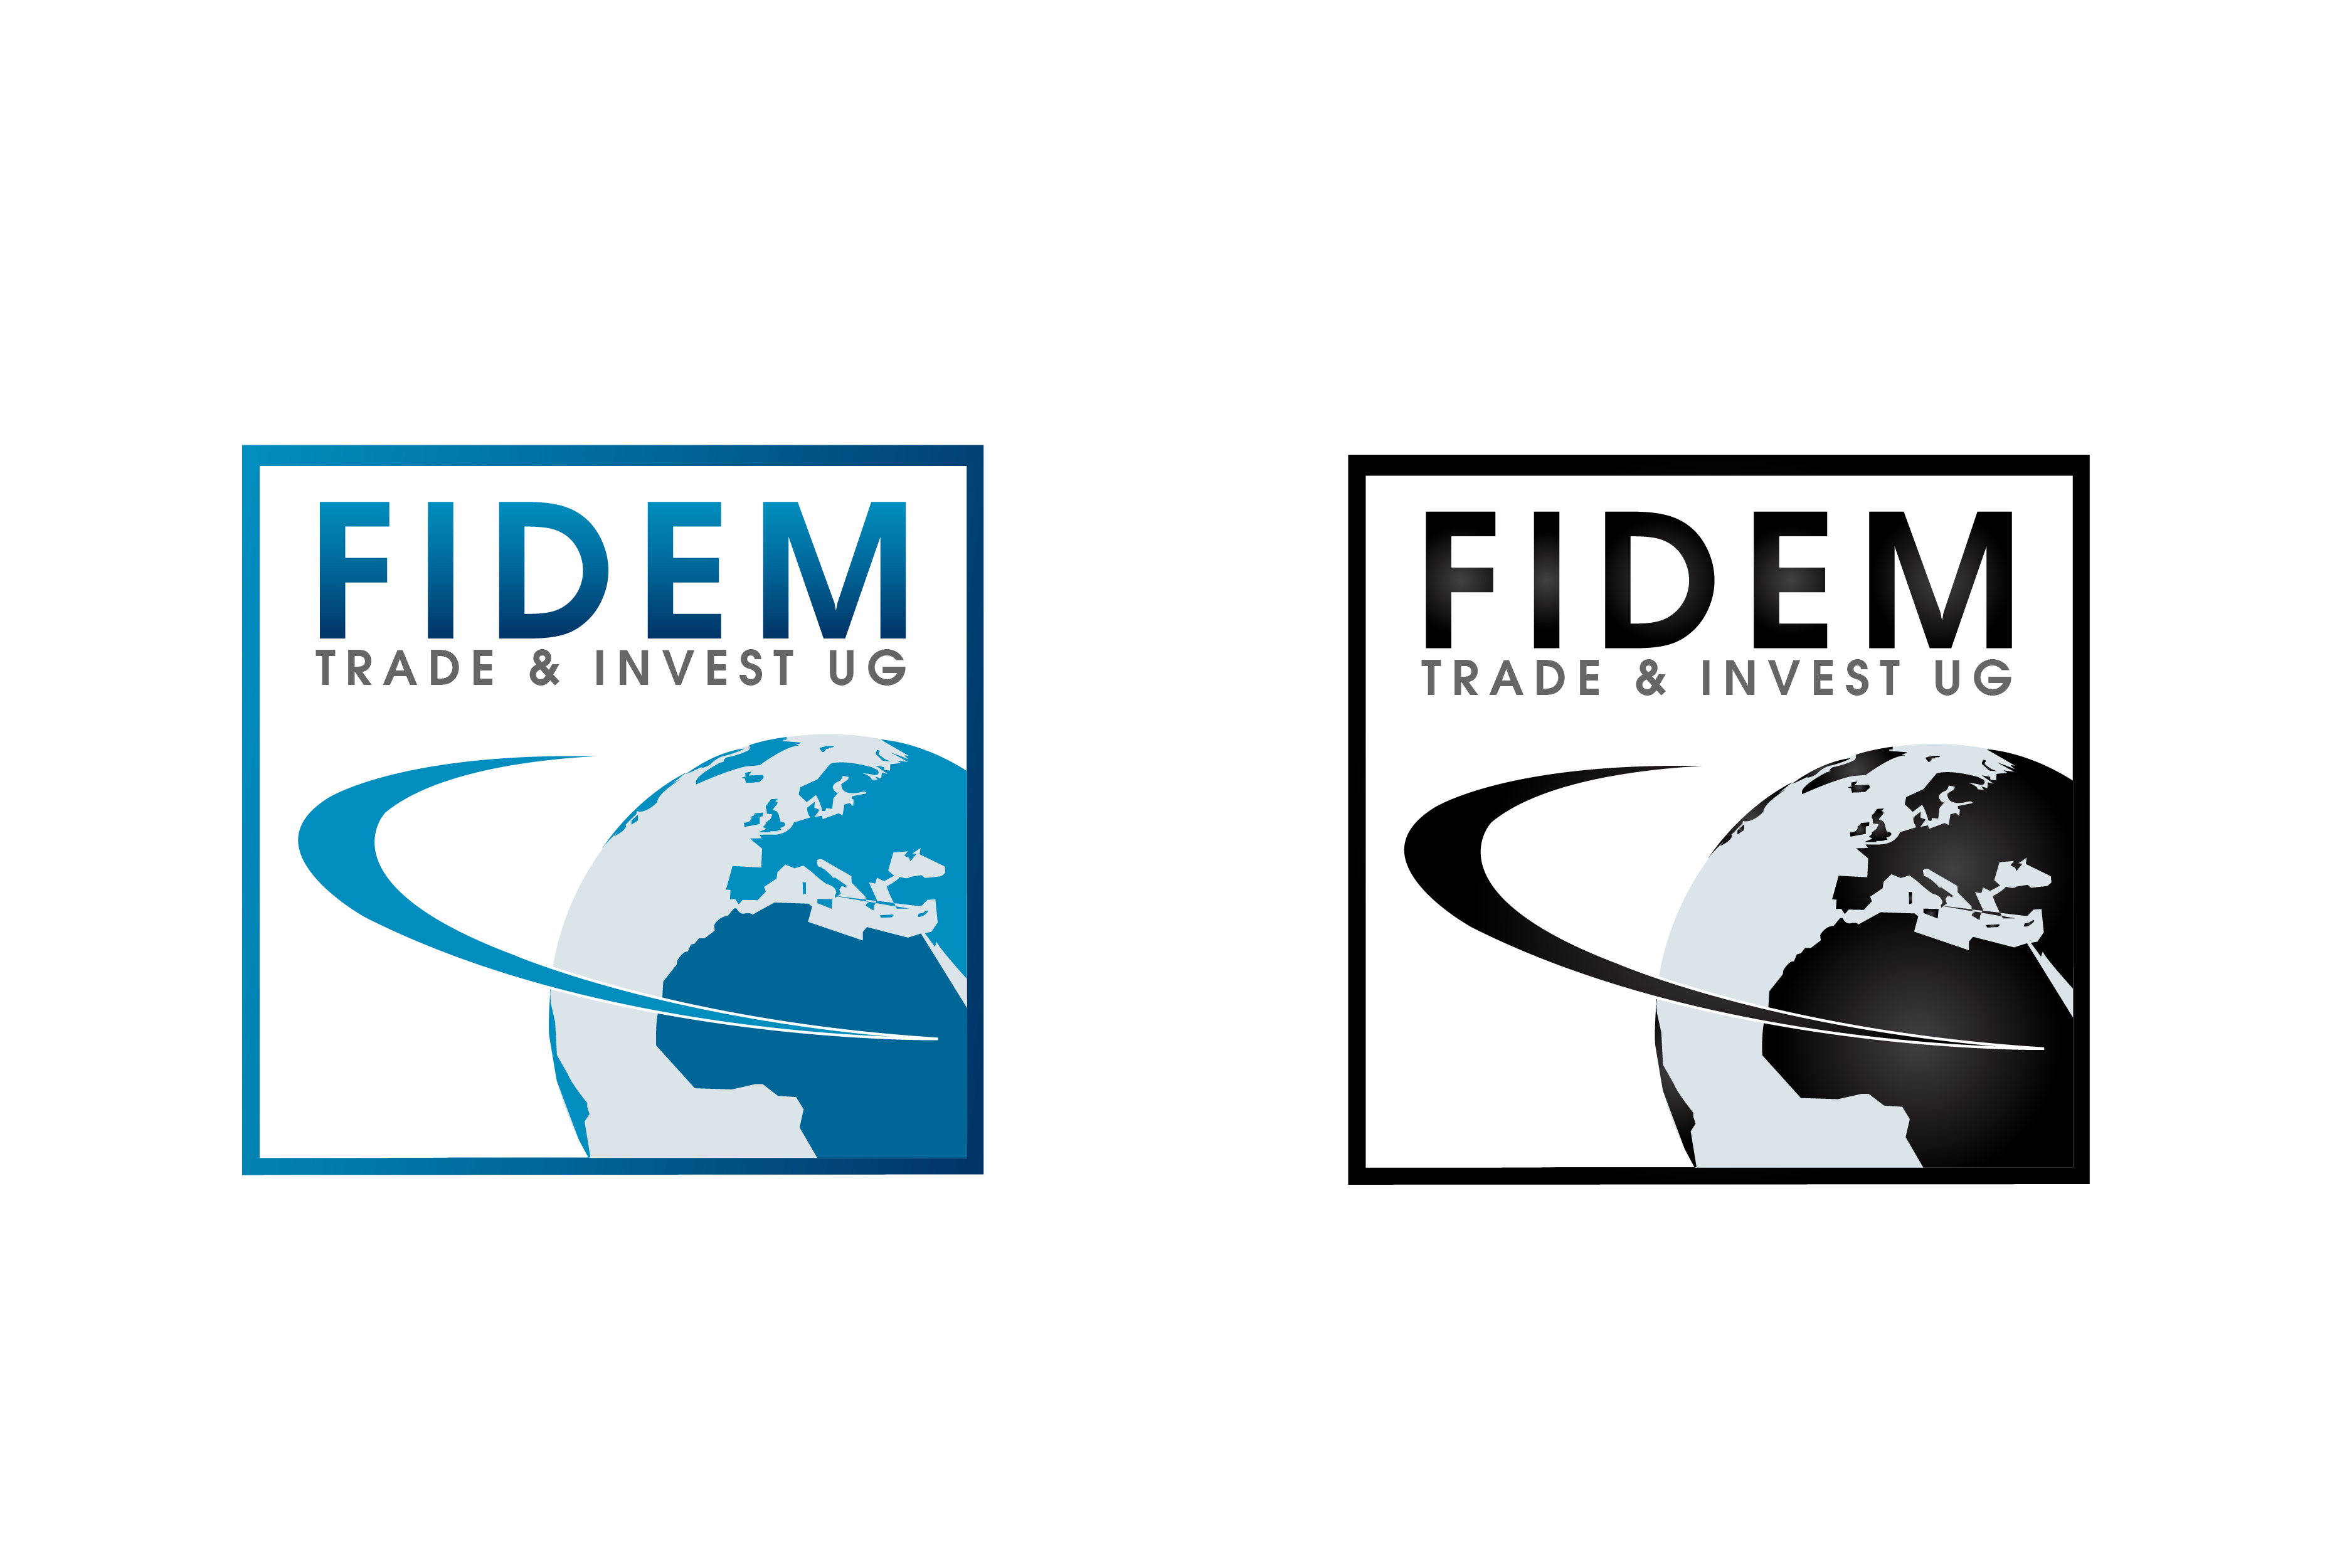 Logo Design by Private User - Entry No. 352 in the Logo Design Contest Professional Logo Design for FIDEM Trade & Invest UG.